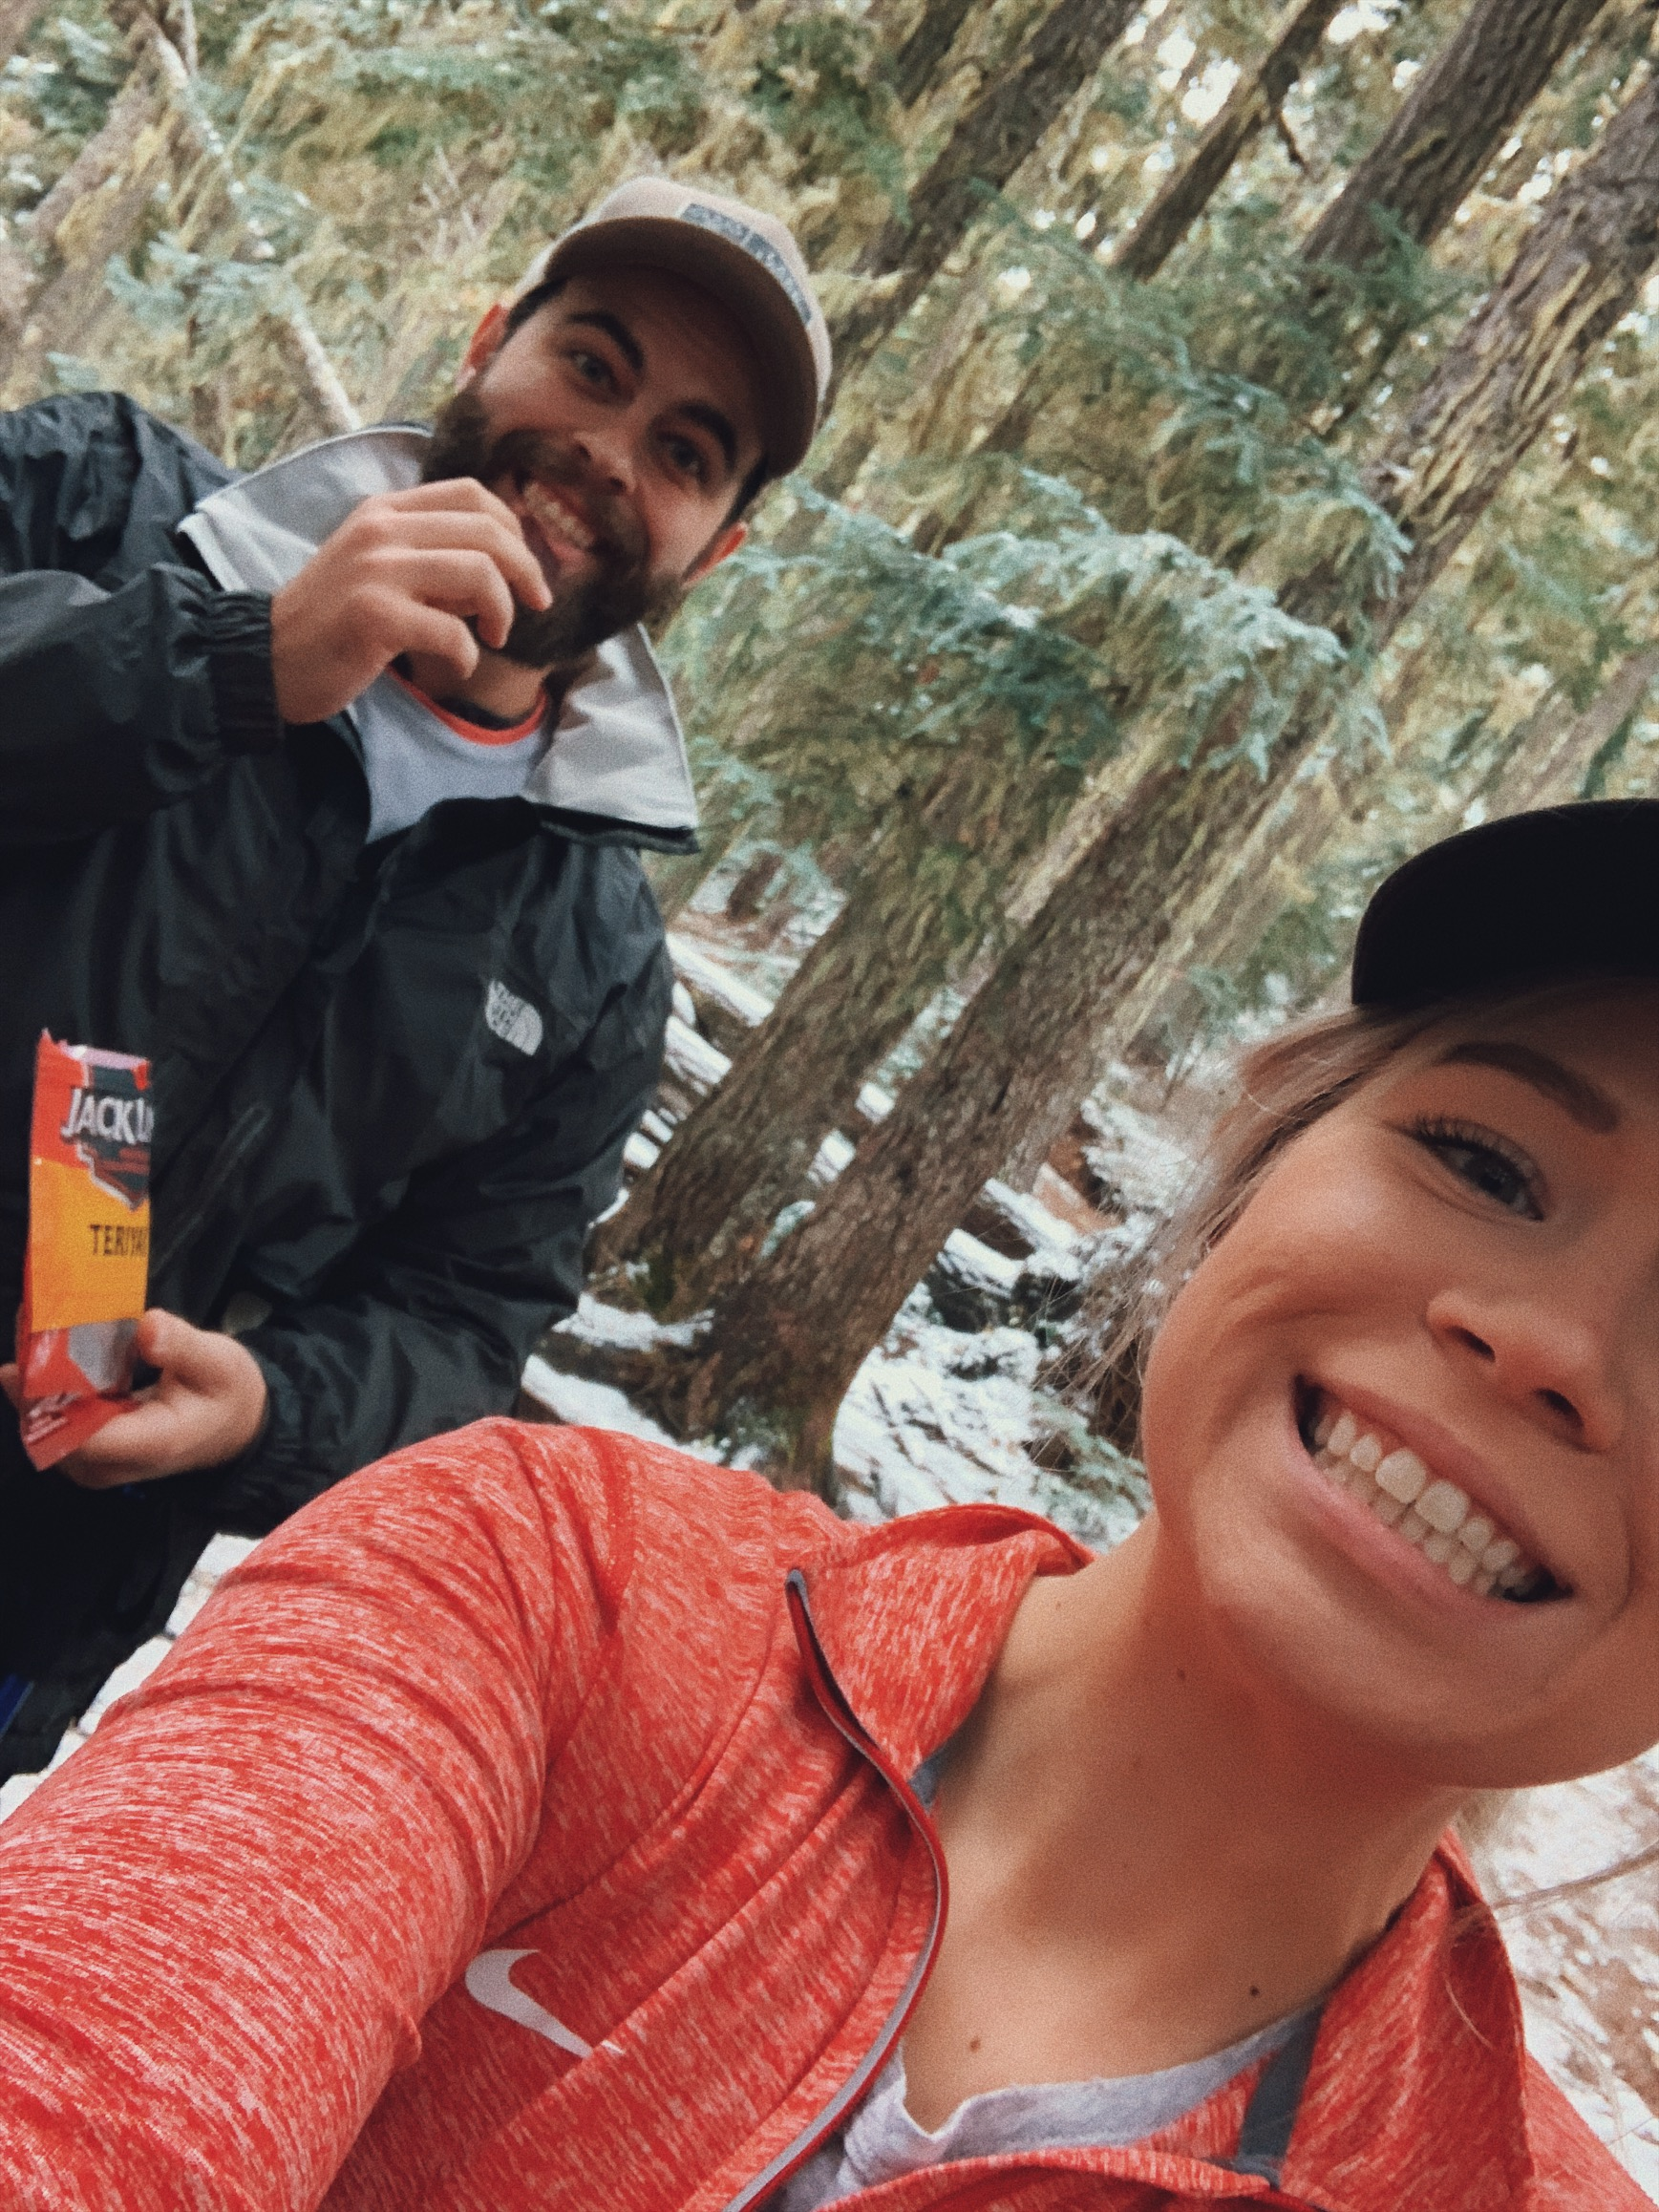 young, innocent faces not yet destroyed by 18 miles of hiking